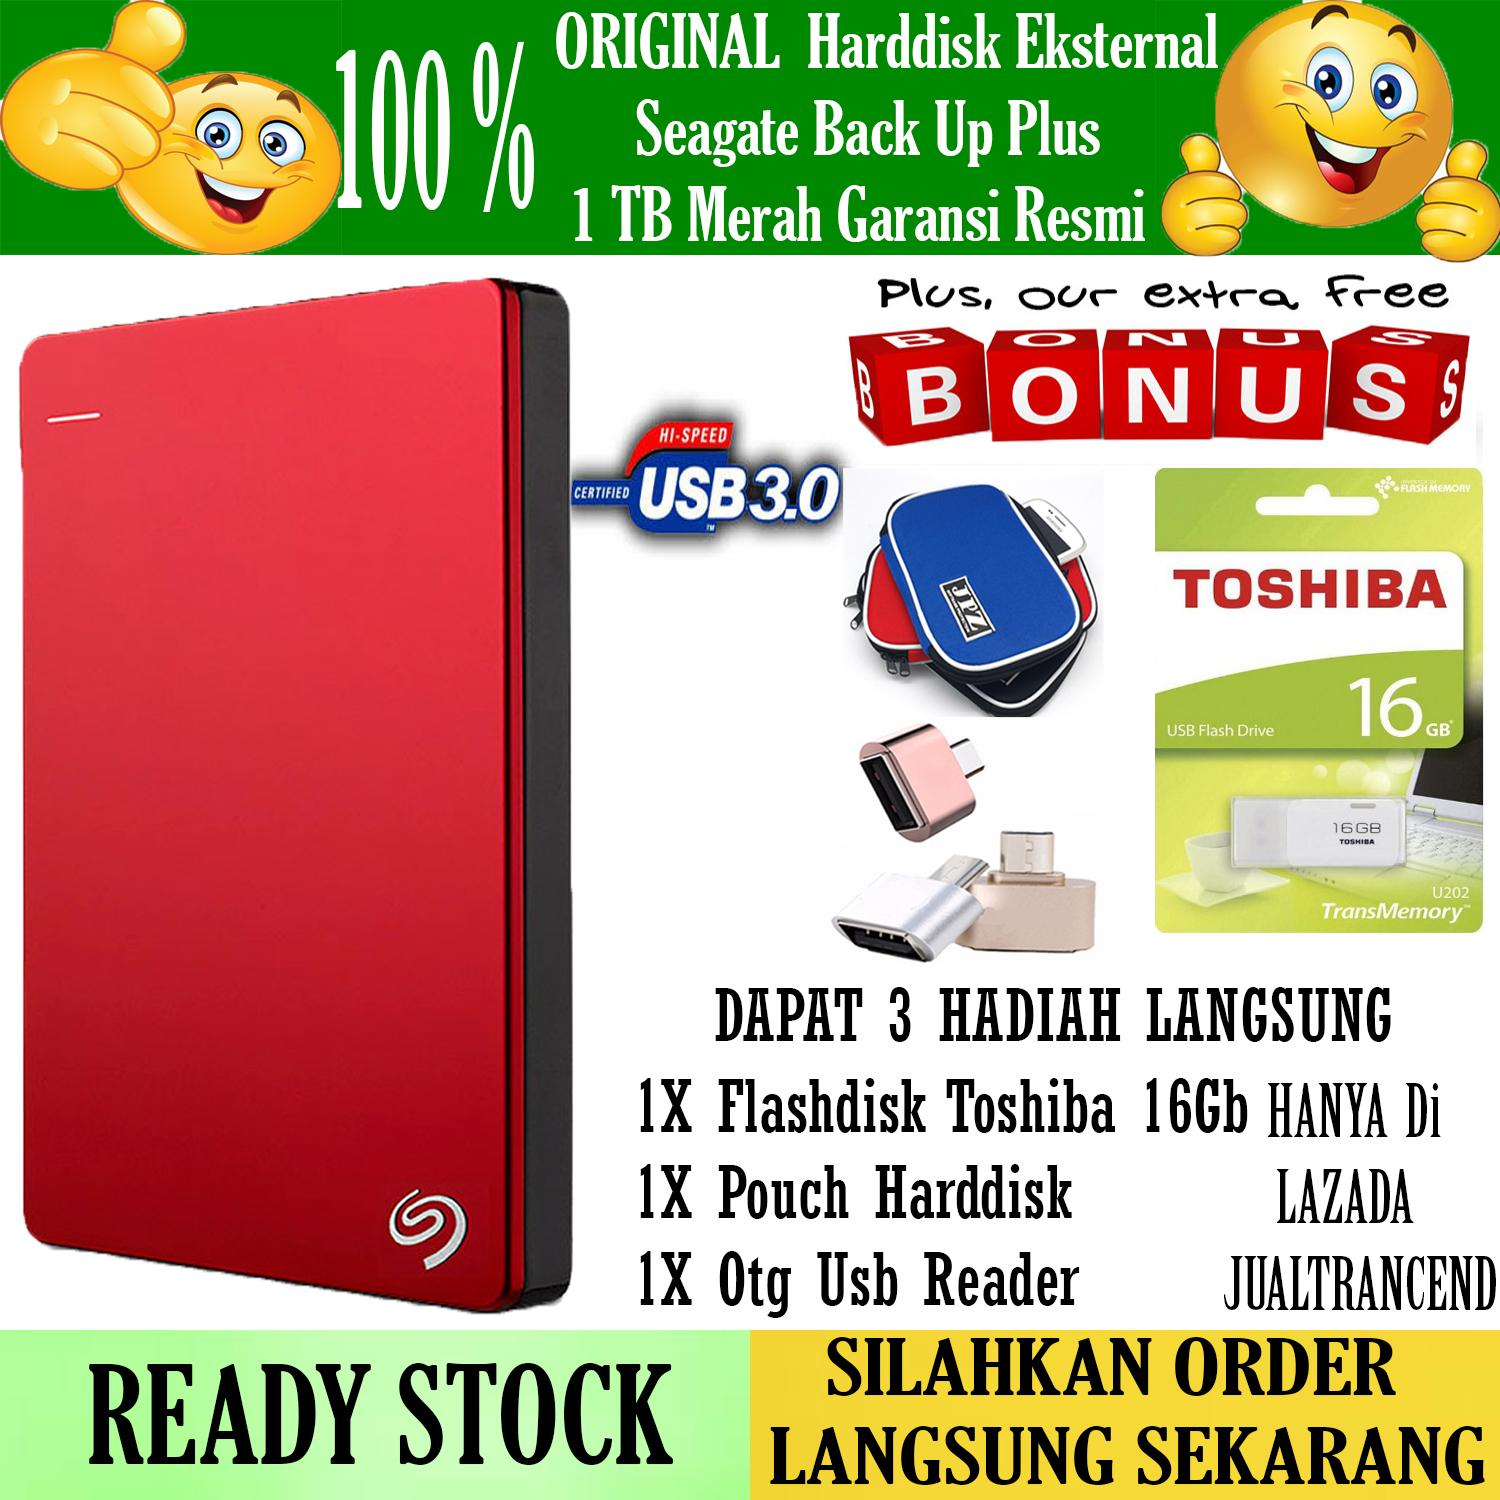 Seagate Backup Plus Slim 1TB - HDD - HD - Hardisk External 2.5 - Merah + Gratis  Flashdisk 16Gb Toshiba Usb 2.0 +Pouch Harddisk + Otg Mini Reader